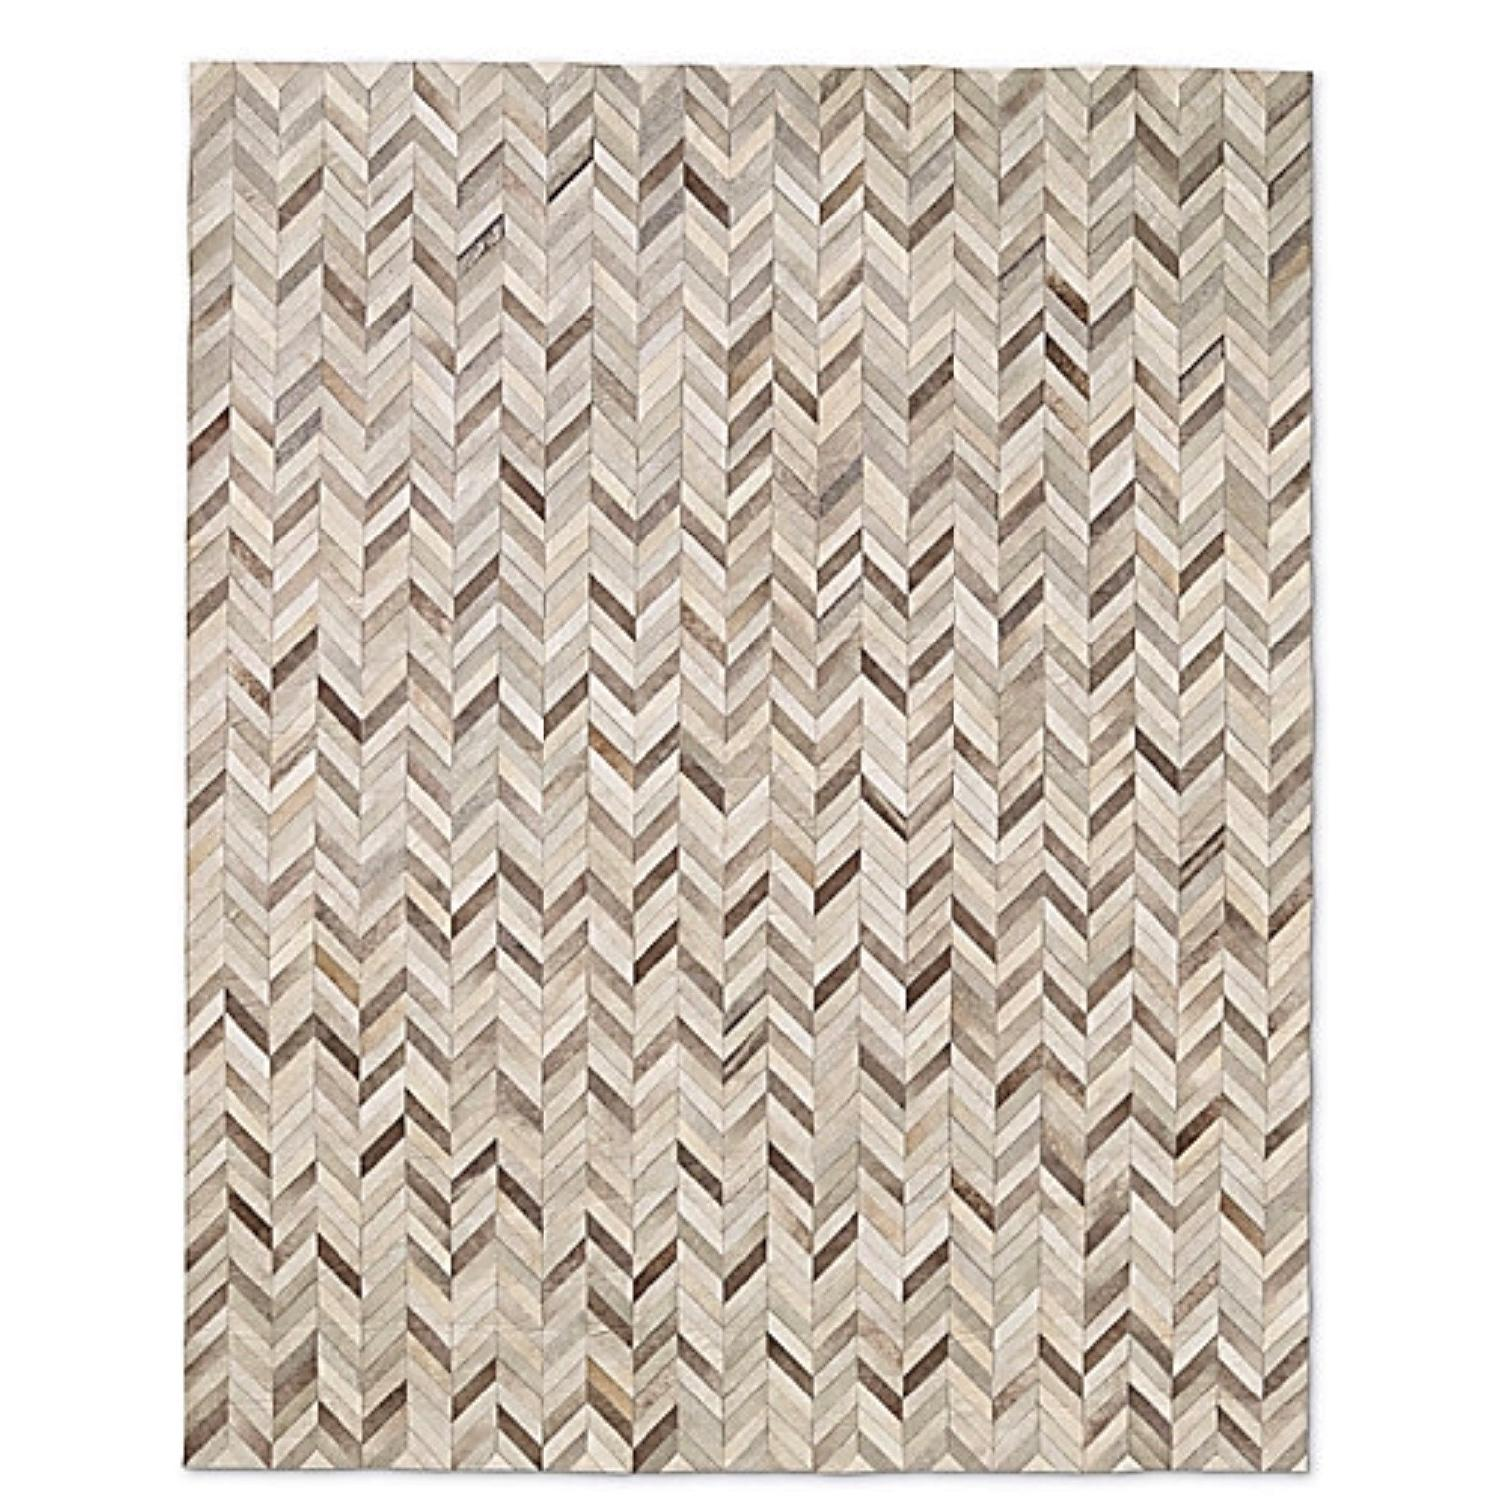 Restoration Hardware Chevron Cowhide Rug in Sand